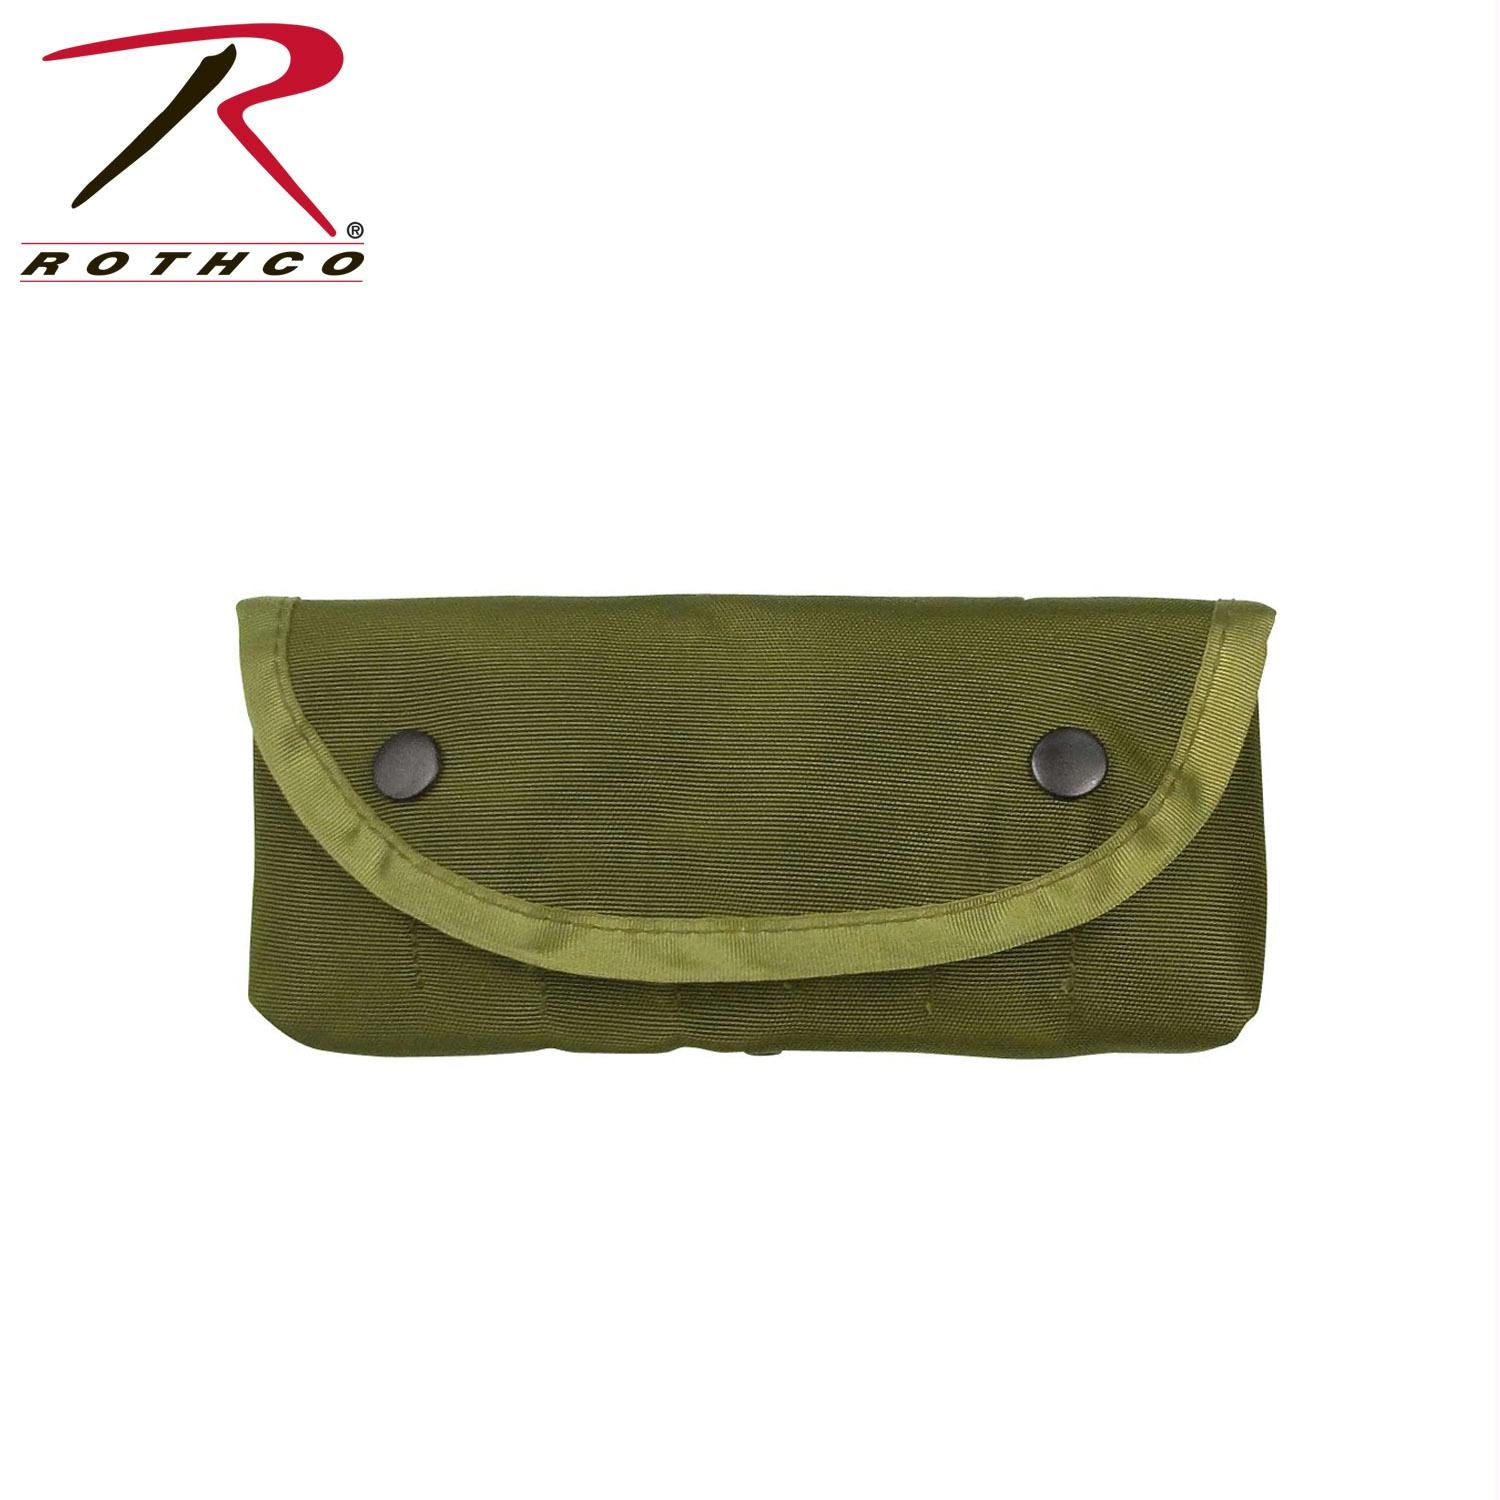 Rothco GI Type Enhanced Shotgun Shell Pouch - Olive Drab